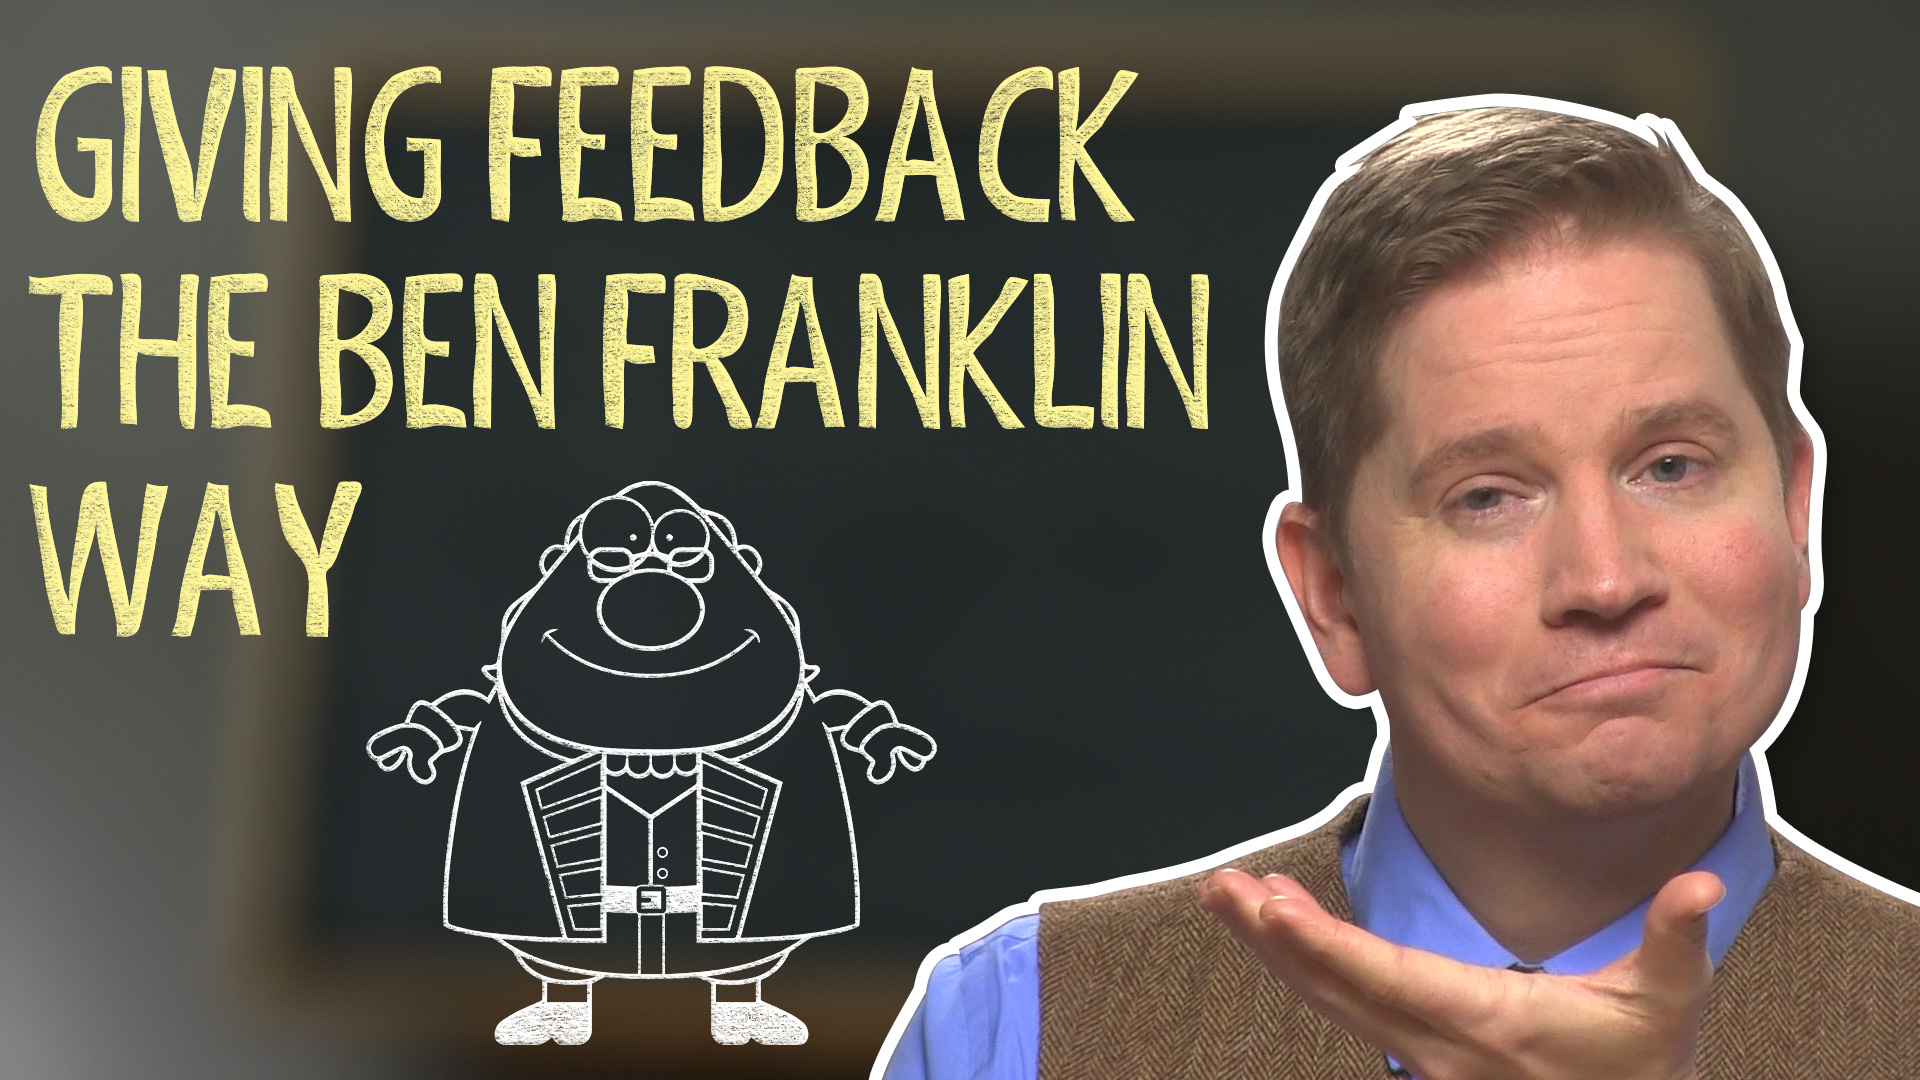 What Ben Franklin can teach us about giving feedback